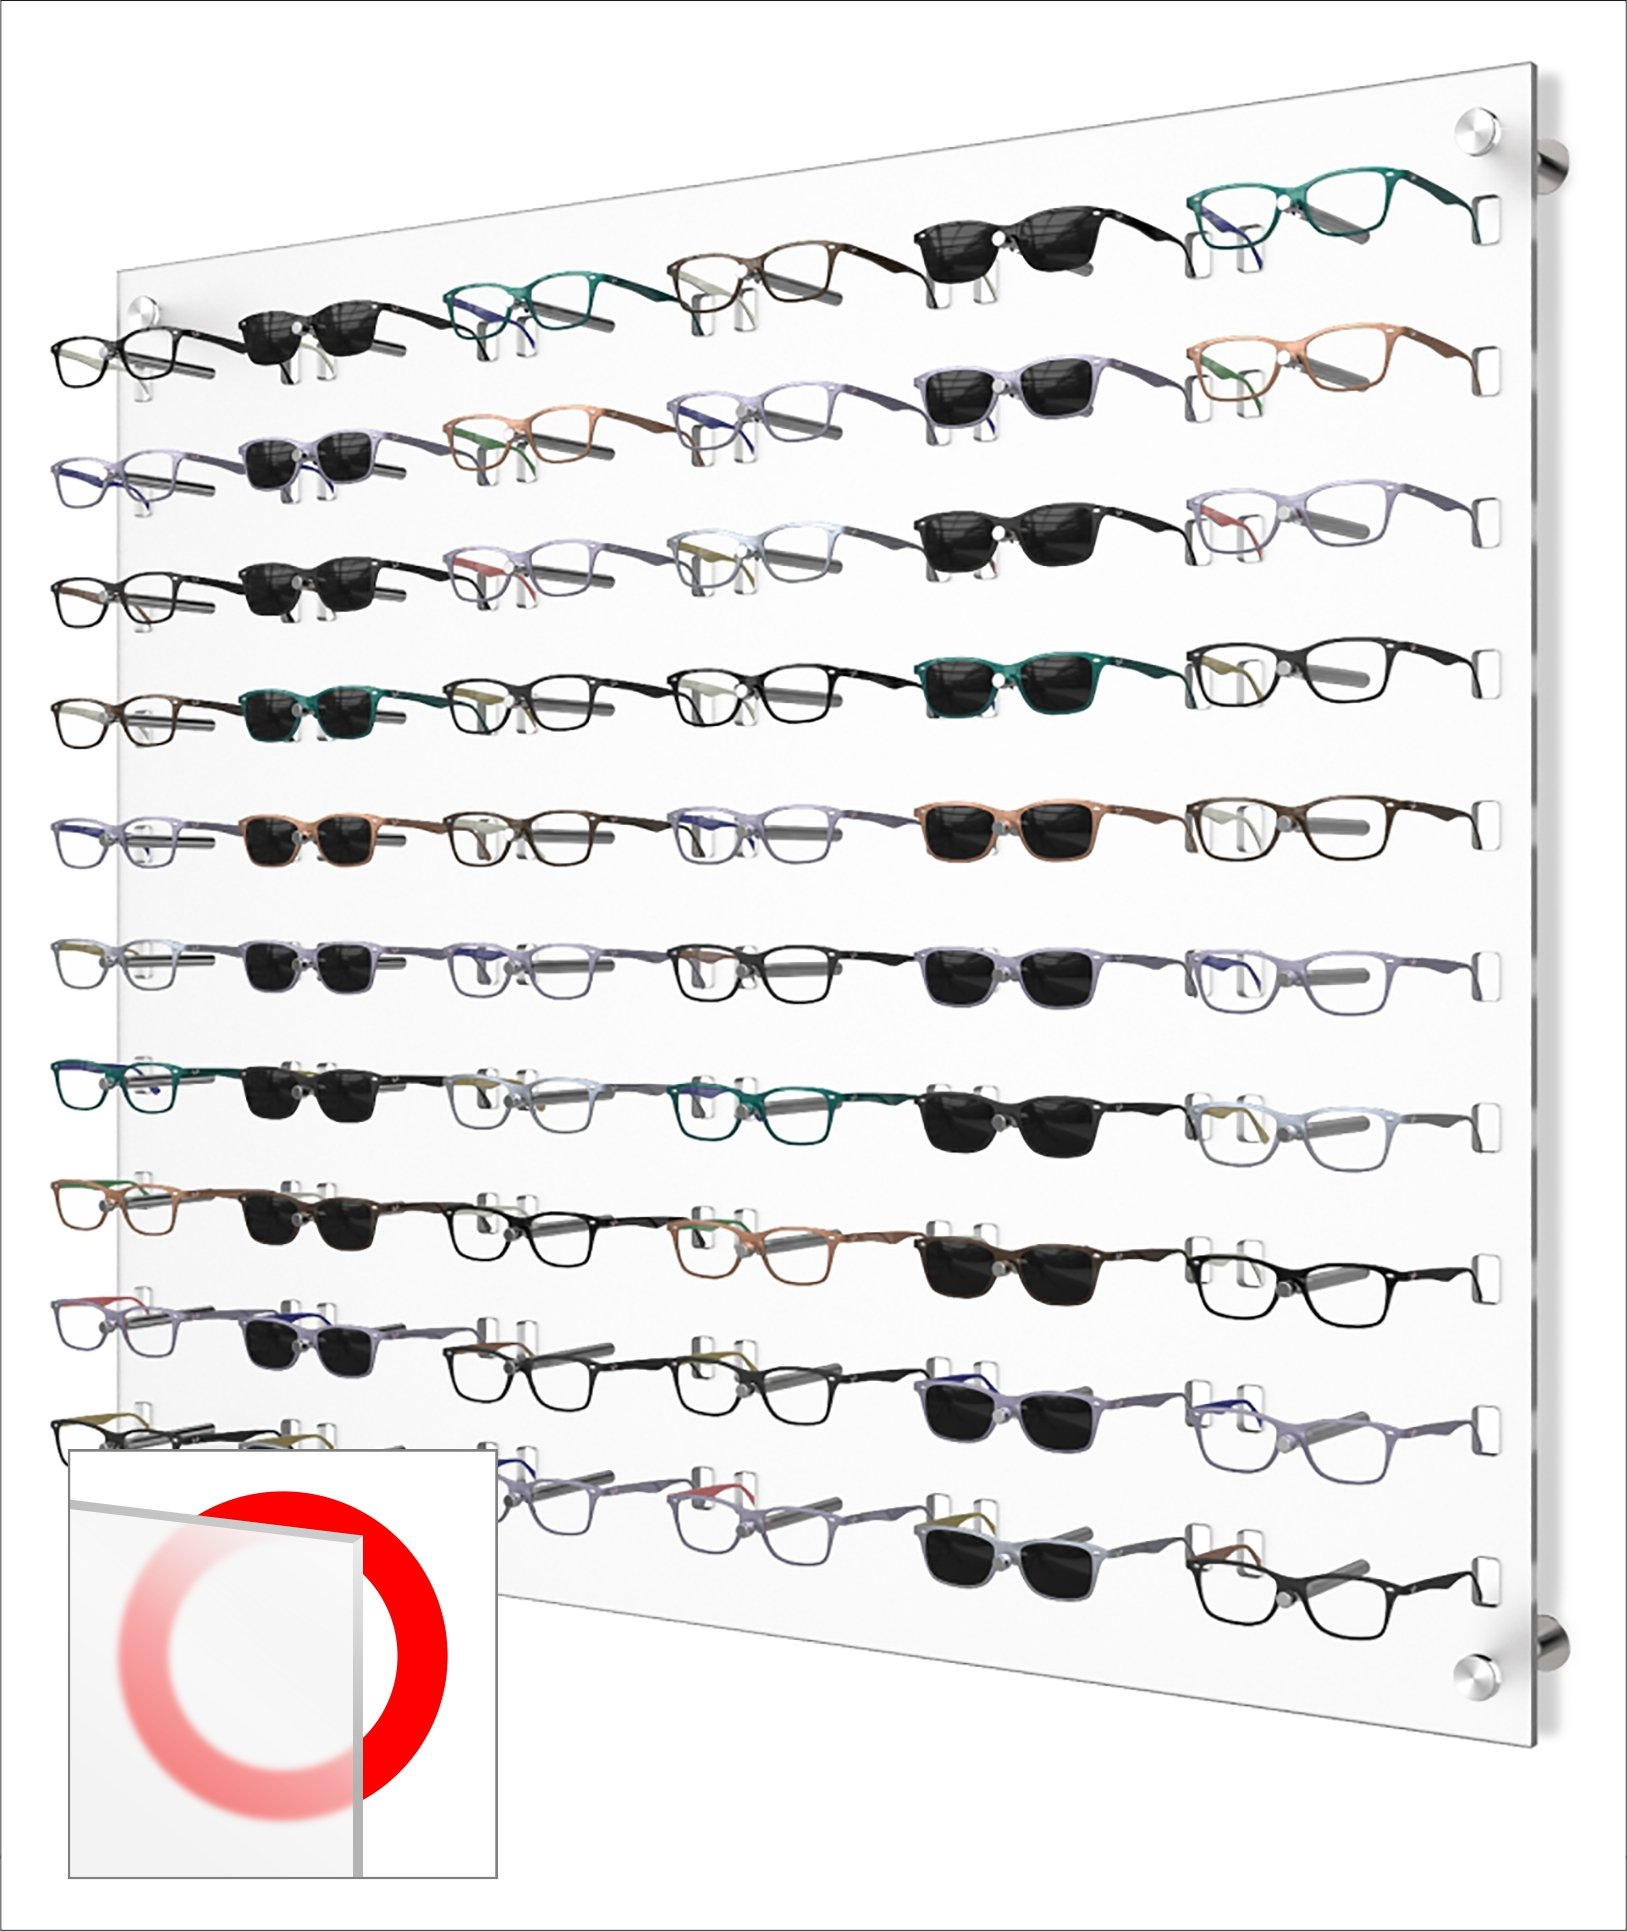 "Optical Display for 60 Eyewear Frames - Wall Mount Acrylic Eyewear or Sunglass Display Package in Frosted White for 60 Frames – 31.25"" (H) X 36.5"" (W)"